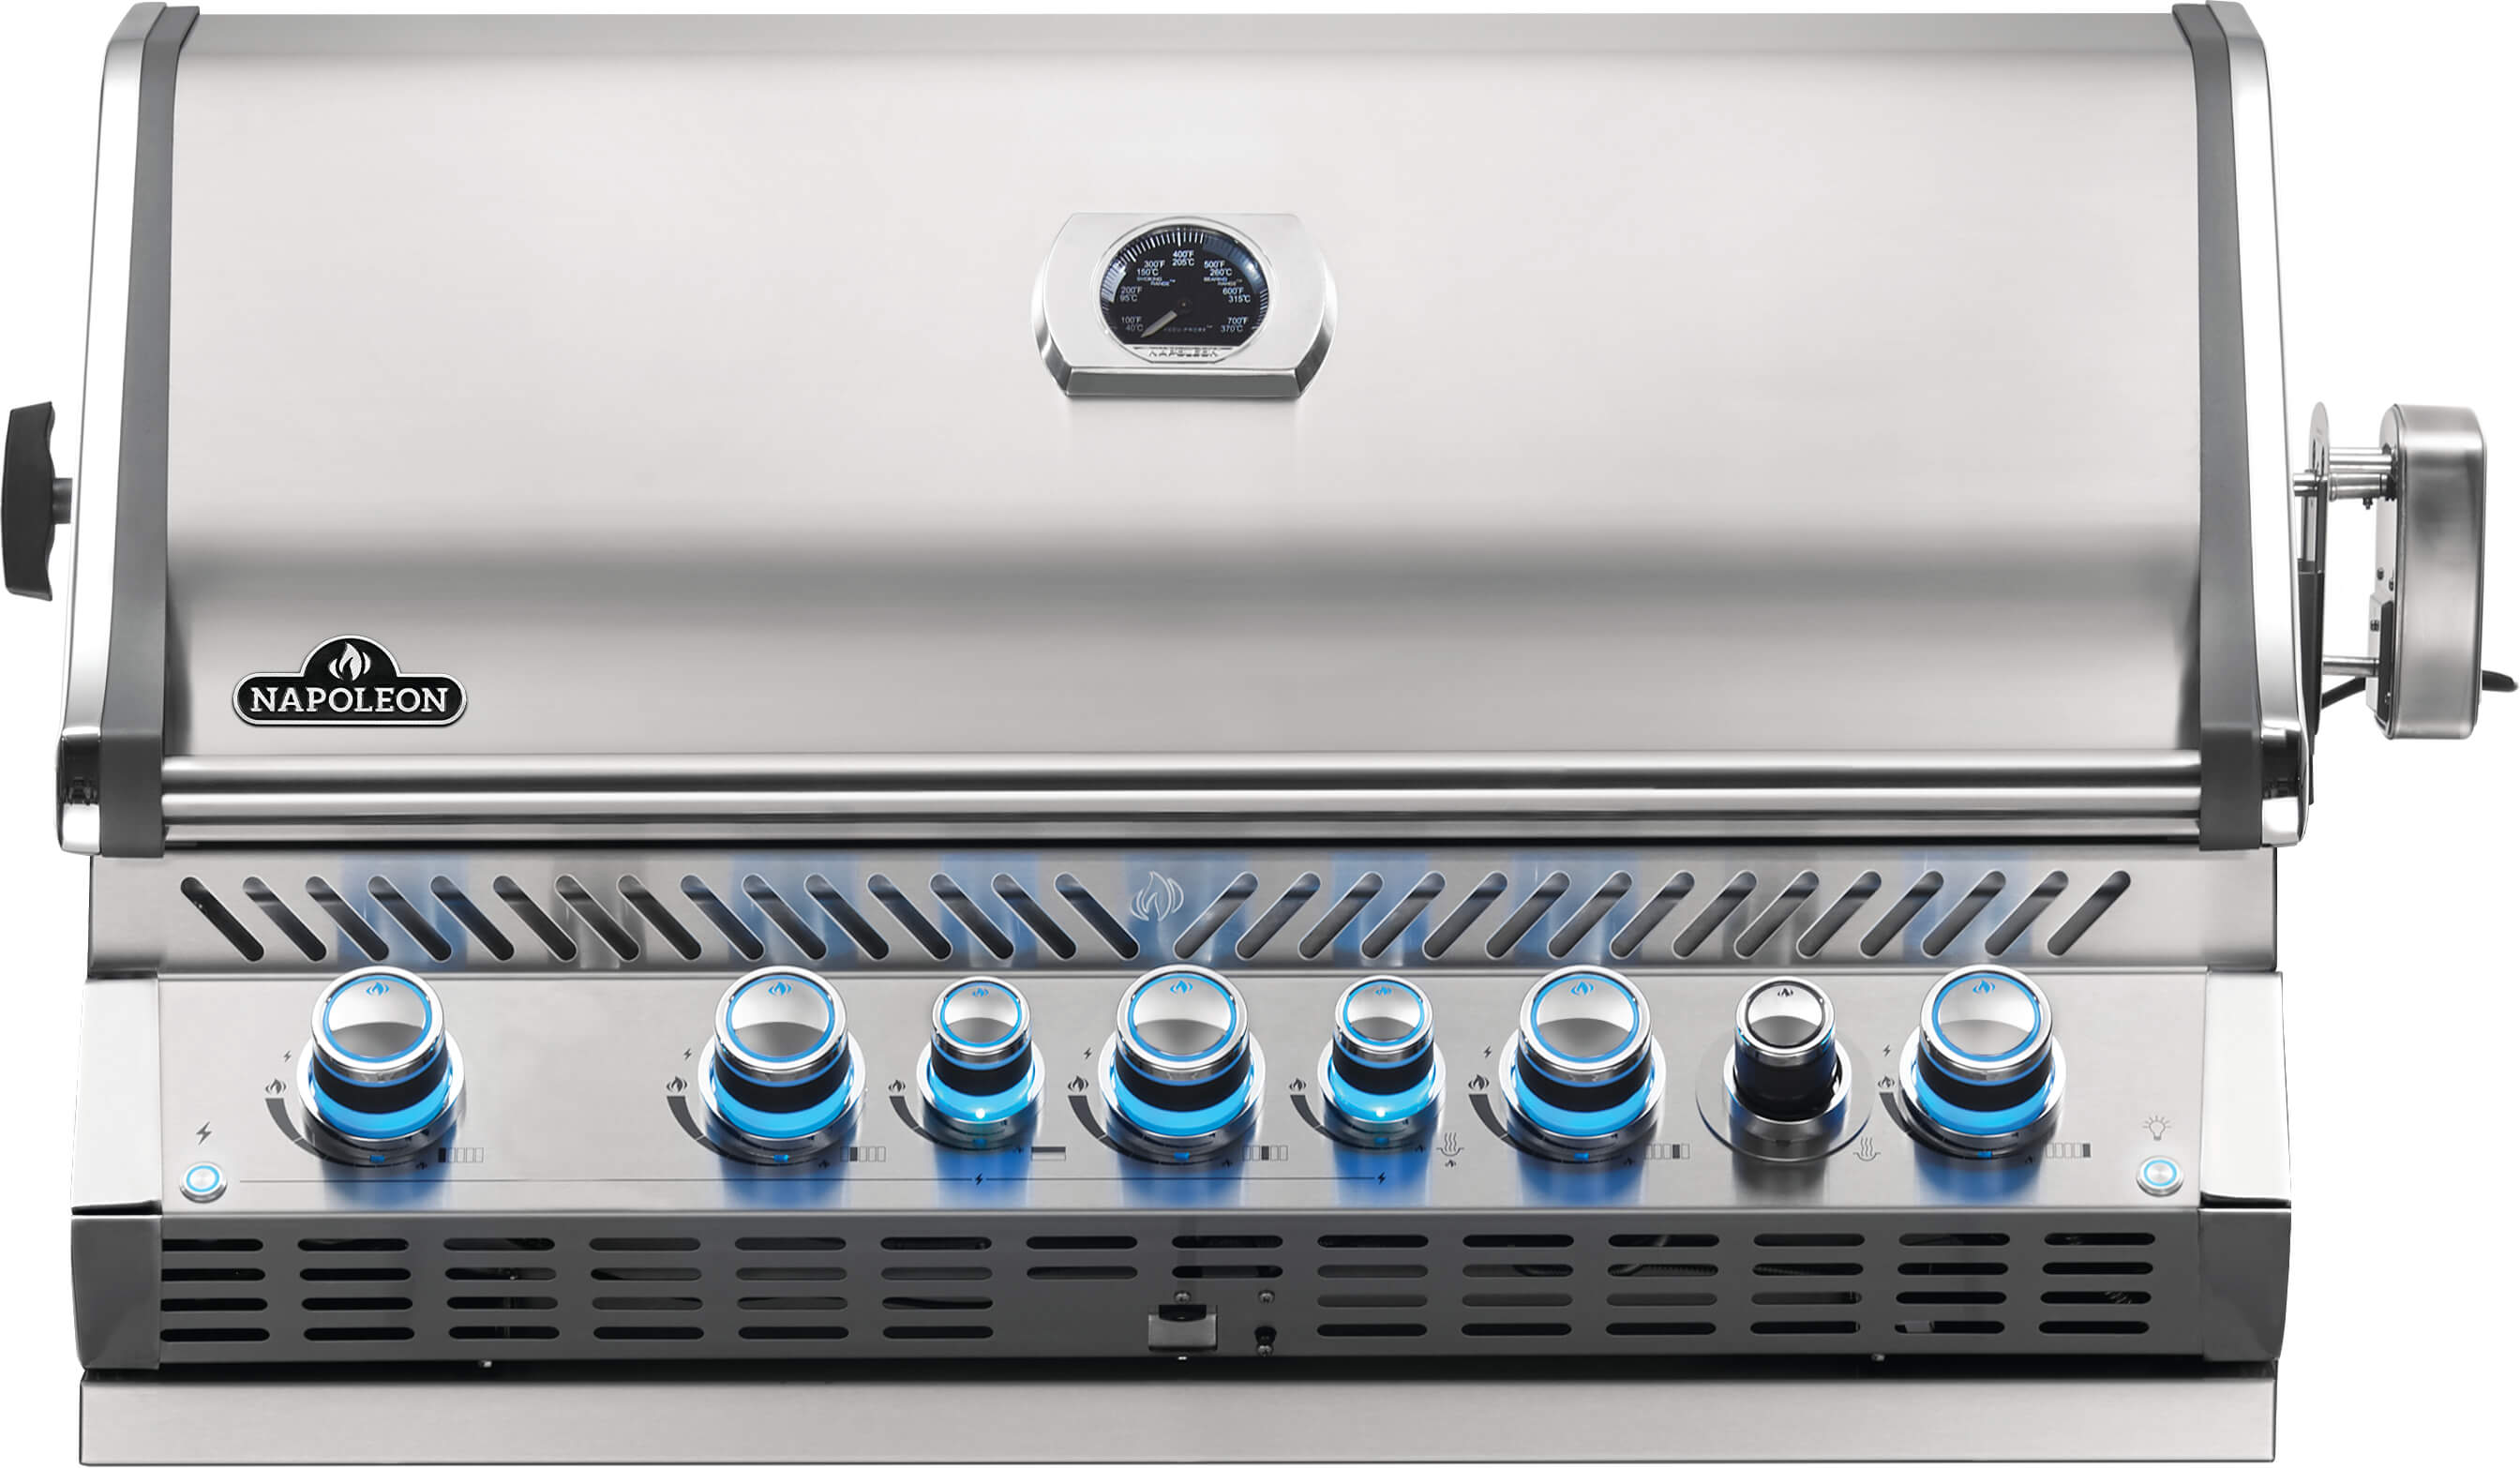 Built-in Prestige PRO™ 665 Propane Gas Grill Head with Infrared Rear Burner, Stainless Steel